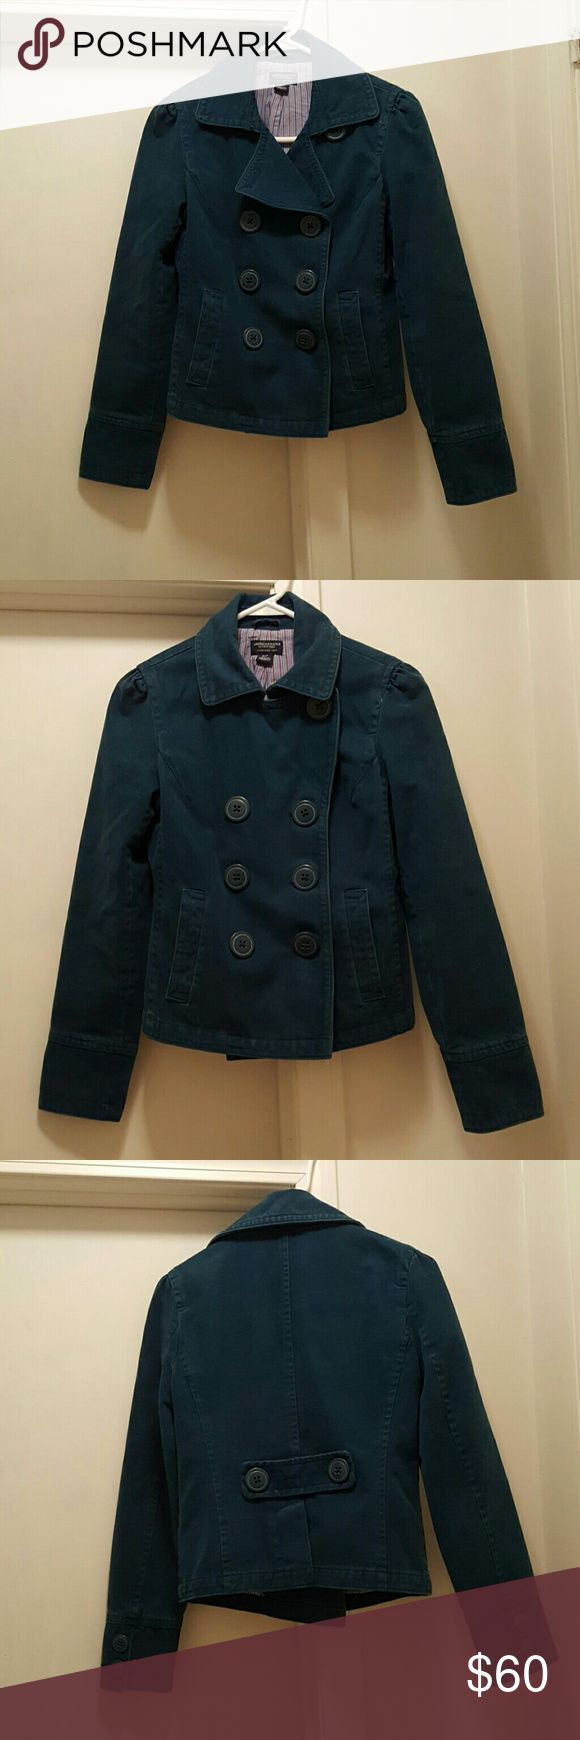 Womens American eagle jacket Super cute green American eagle blazer, size small, double breasted, gathered or very slightly puffed shoulders. Worn only a few times. American Eagle Outfitters Jackets & Coats Blazers